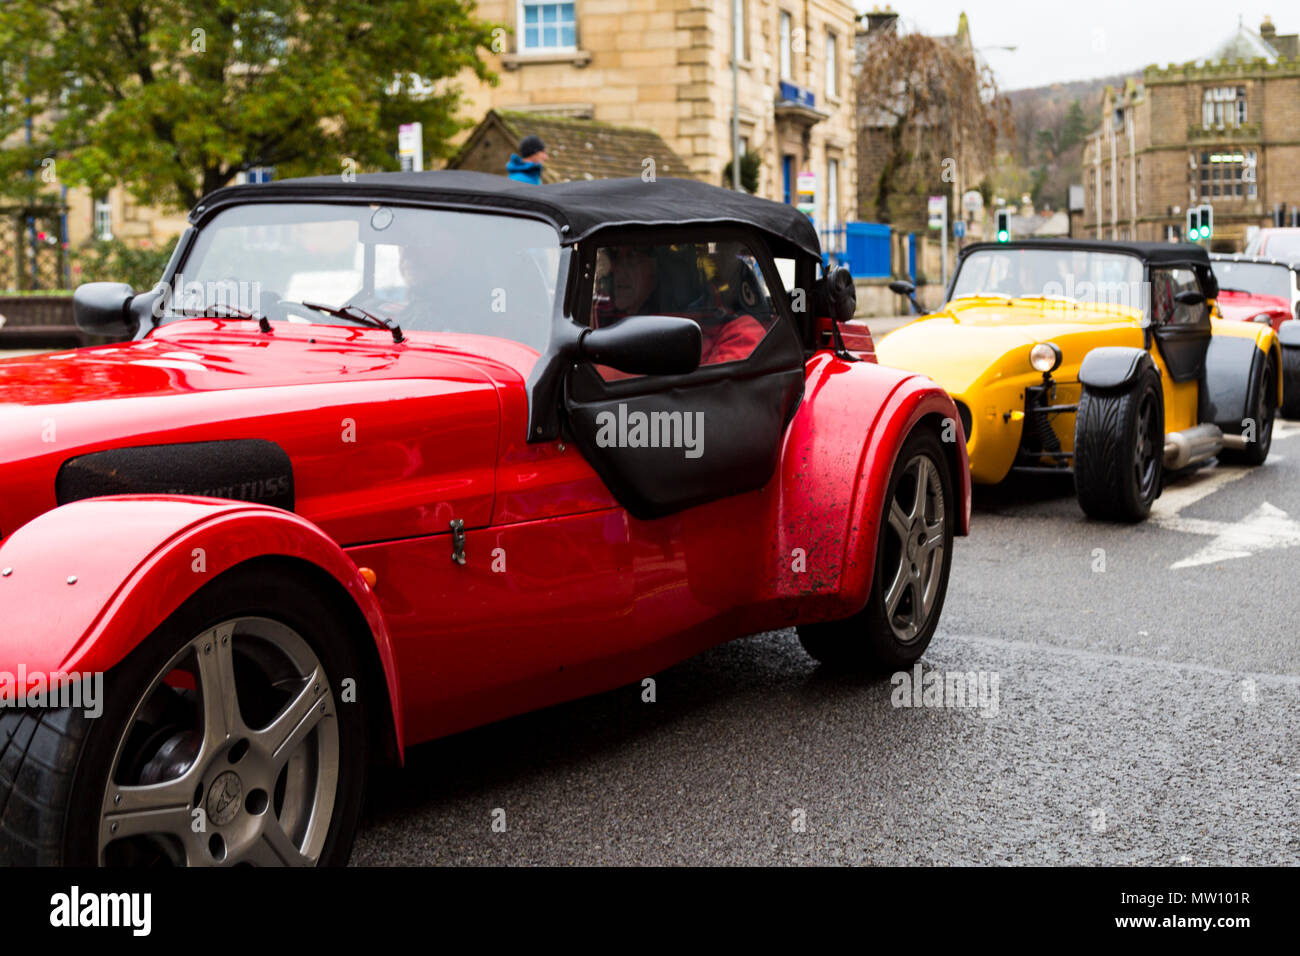 A group of Westfield Sport Cars seen in a line in the Derbyshire town of Bakewell Stock Photo